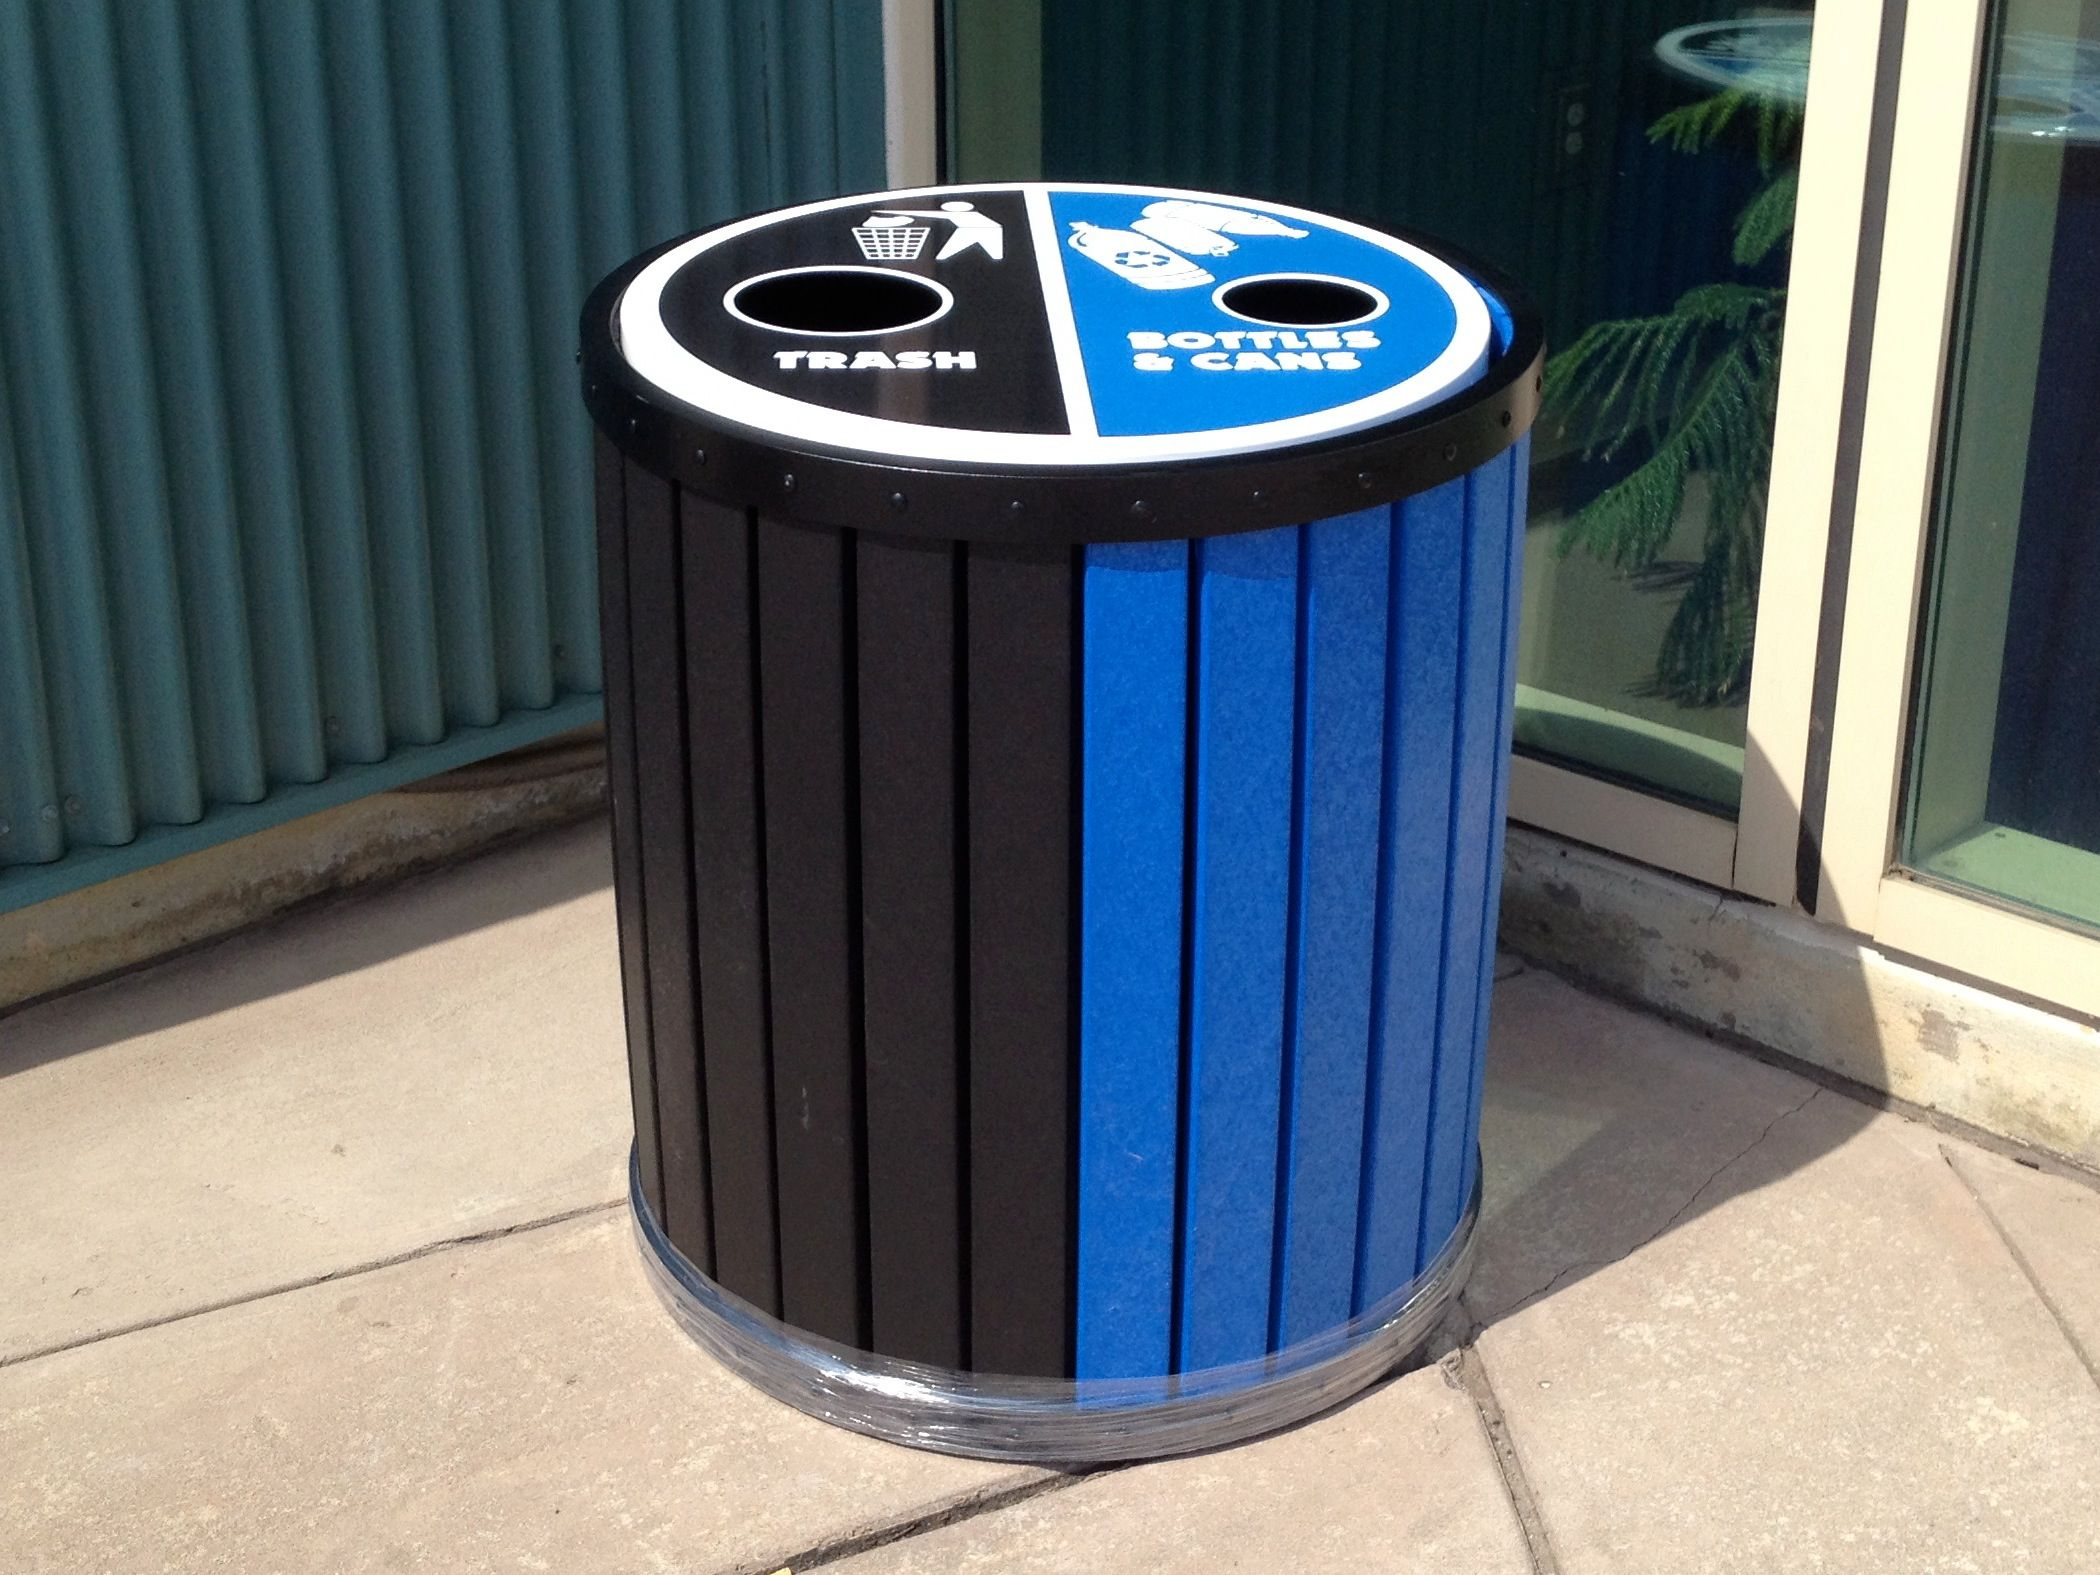 13+ Double sided trash can ideas